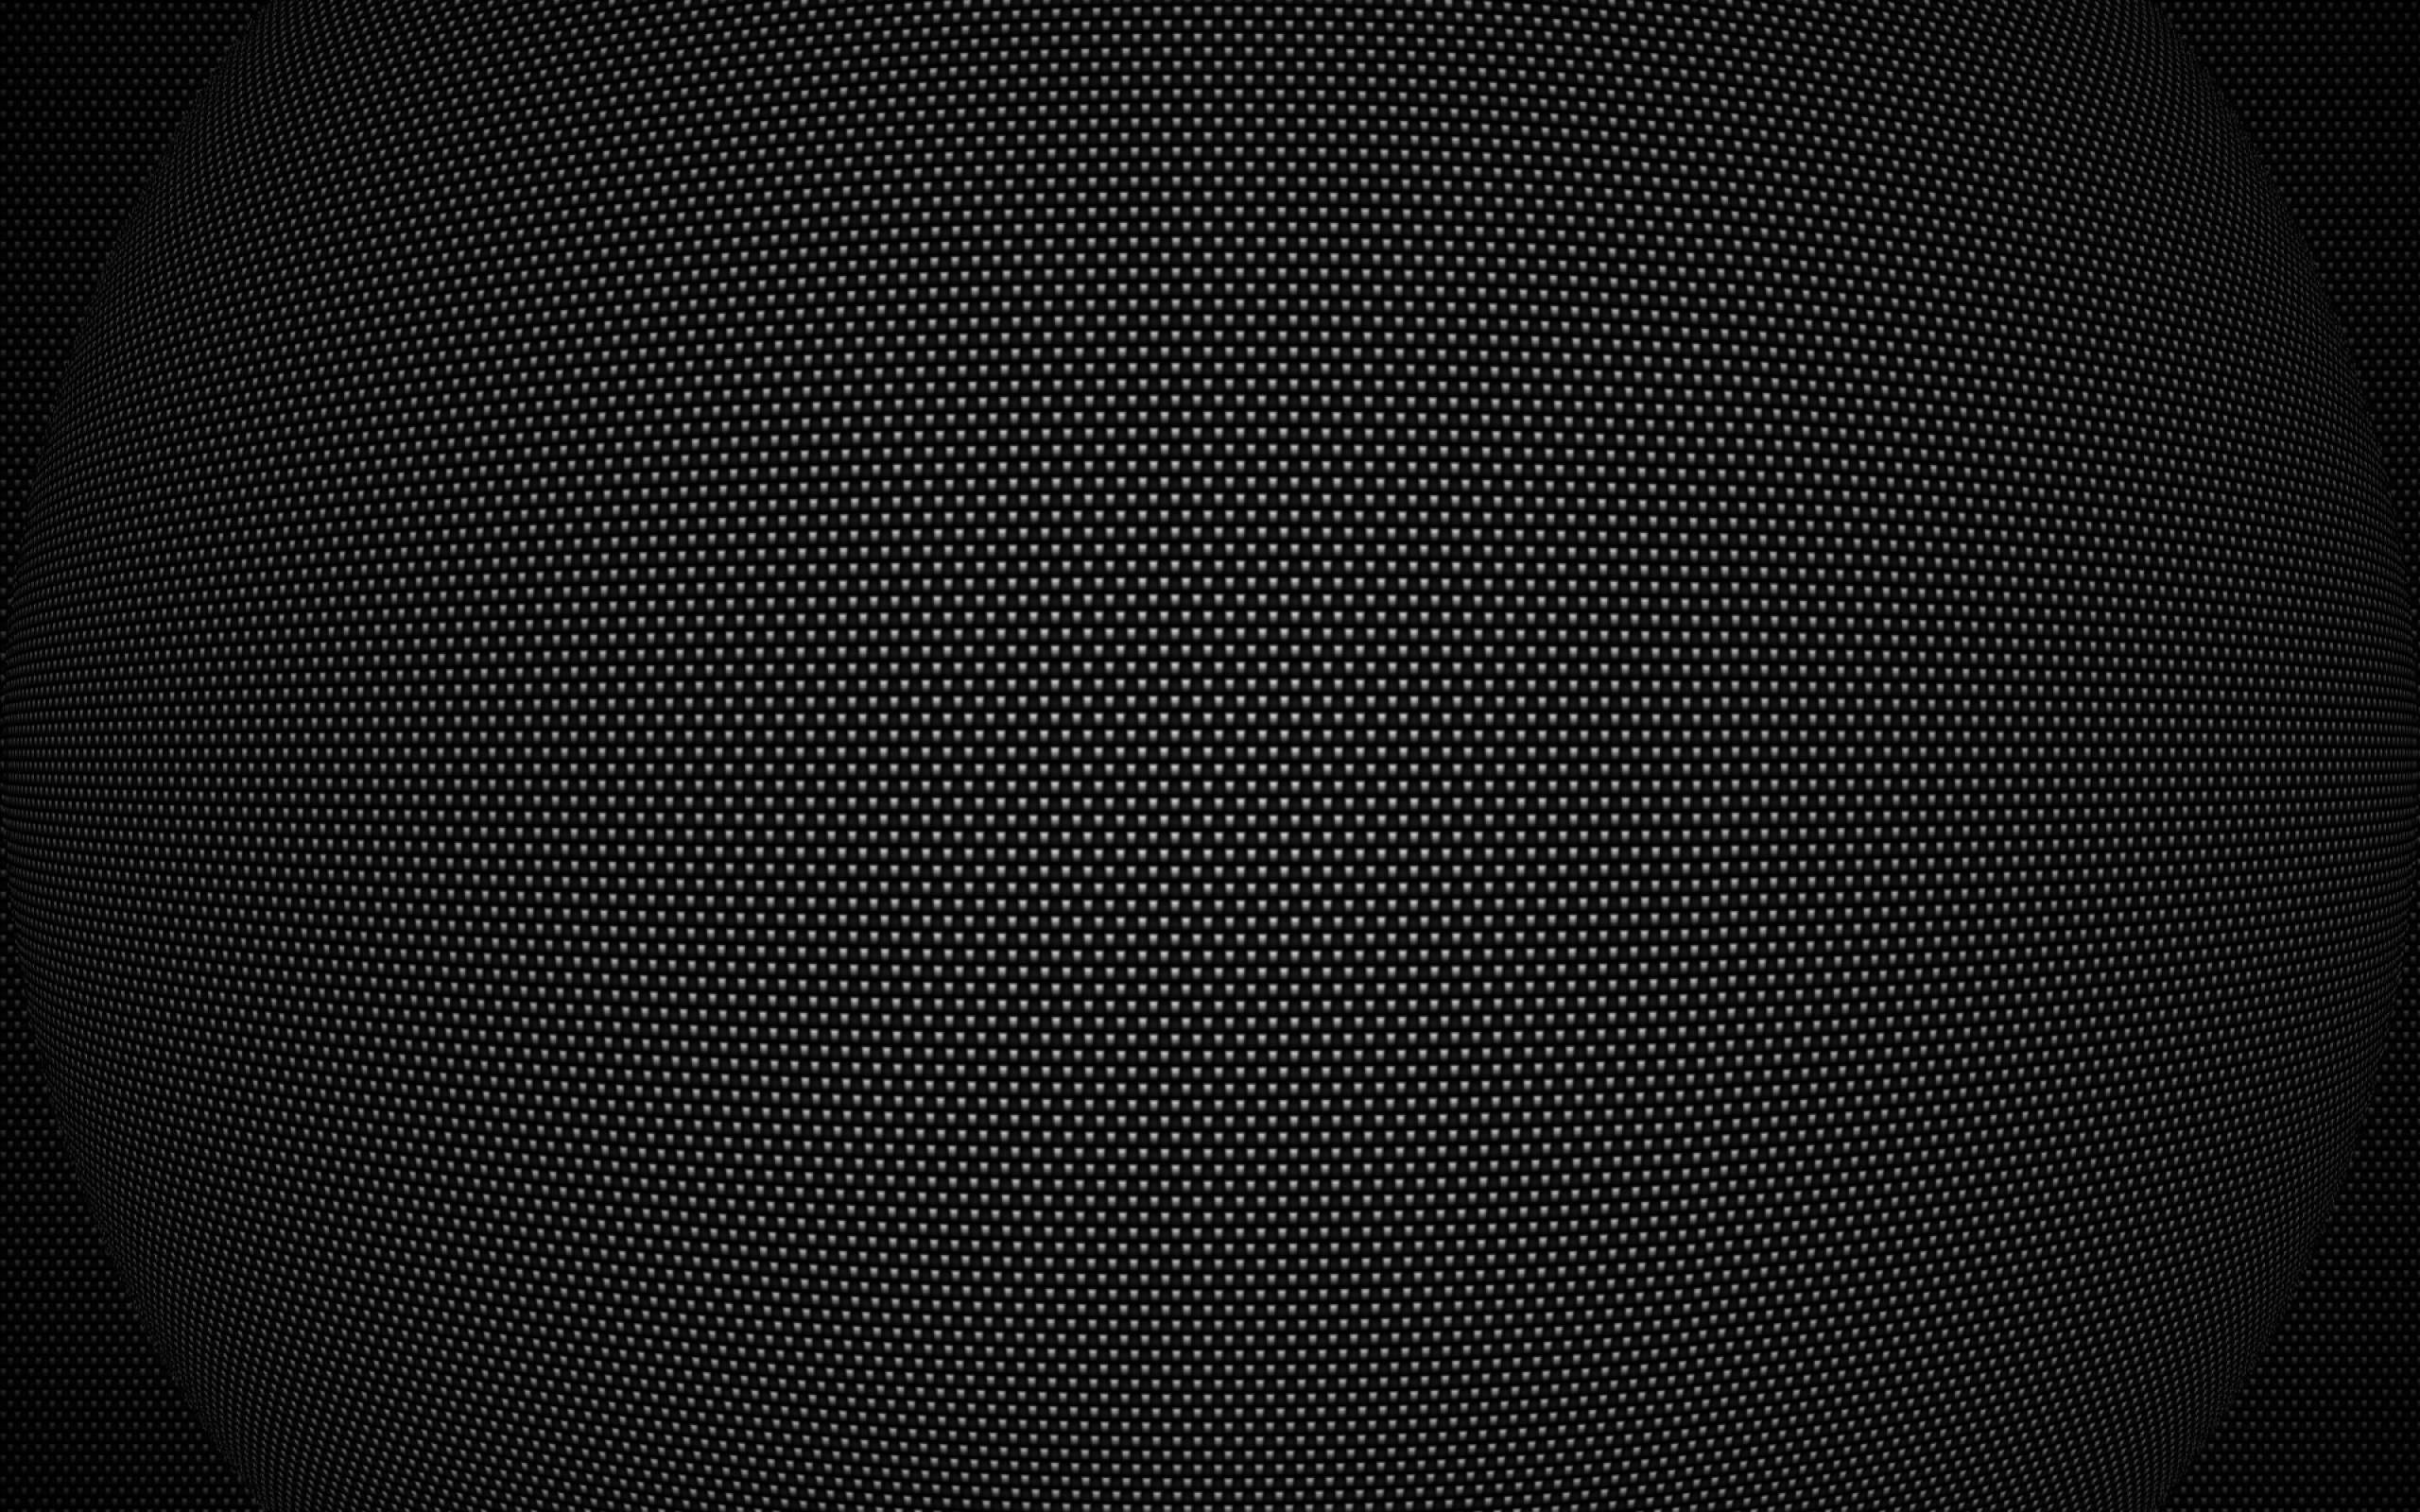 2560x1600 Black-dot-texture-wallpapers-HD-1